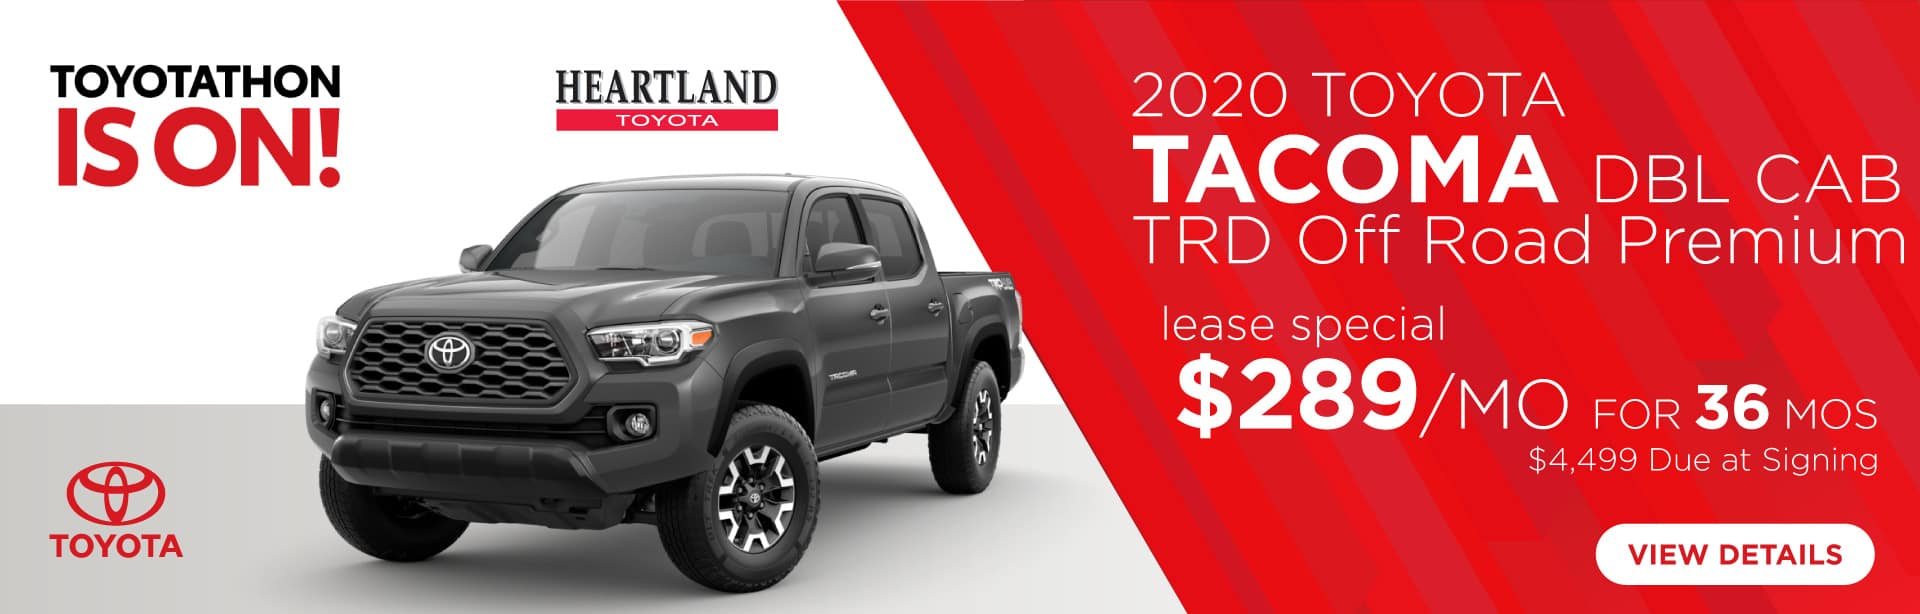 2020 Toyota Tacoma TRD Off Road Premium Double Cab $289/mo for 36 months* $4,499 Due at Signing    *Offer valid on 2020 Toyota Tacoma TRD Off Road Premium Double Cab.Includes navigation, tech pkg and premium audio. $289 per month for 36 months. Lease with $4,499 due at signing; includes a $695 acquisition fee. Valid on VIN: 3TMCZ5AN9LM293280, 3TMCZ5AN5LM291431, 3TMCZ5AN0LM288856. MSRP starting at $41,730. Lease is through TFS. Subject to credit approval. No Security deposit required. Excludes taxes, title, and fees. 36 monthly payments required. Not all lessees will qualify for lowest payment through participating lender. Residency restrictions apply. Lessee responsible for mileage over 10,000 miles per year at $0.15/mile per year. Option to purchase at lease end. A negotiable dealer documentary service fee of up to $150 may be added to the sale price or capitalized cost. Offer expires 1/2/2020.